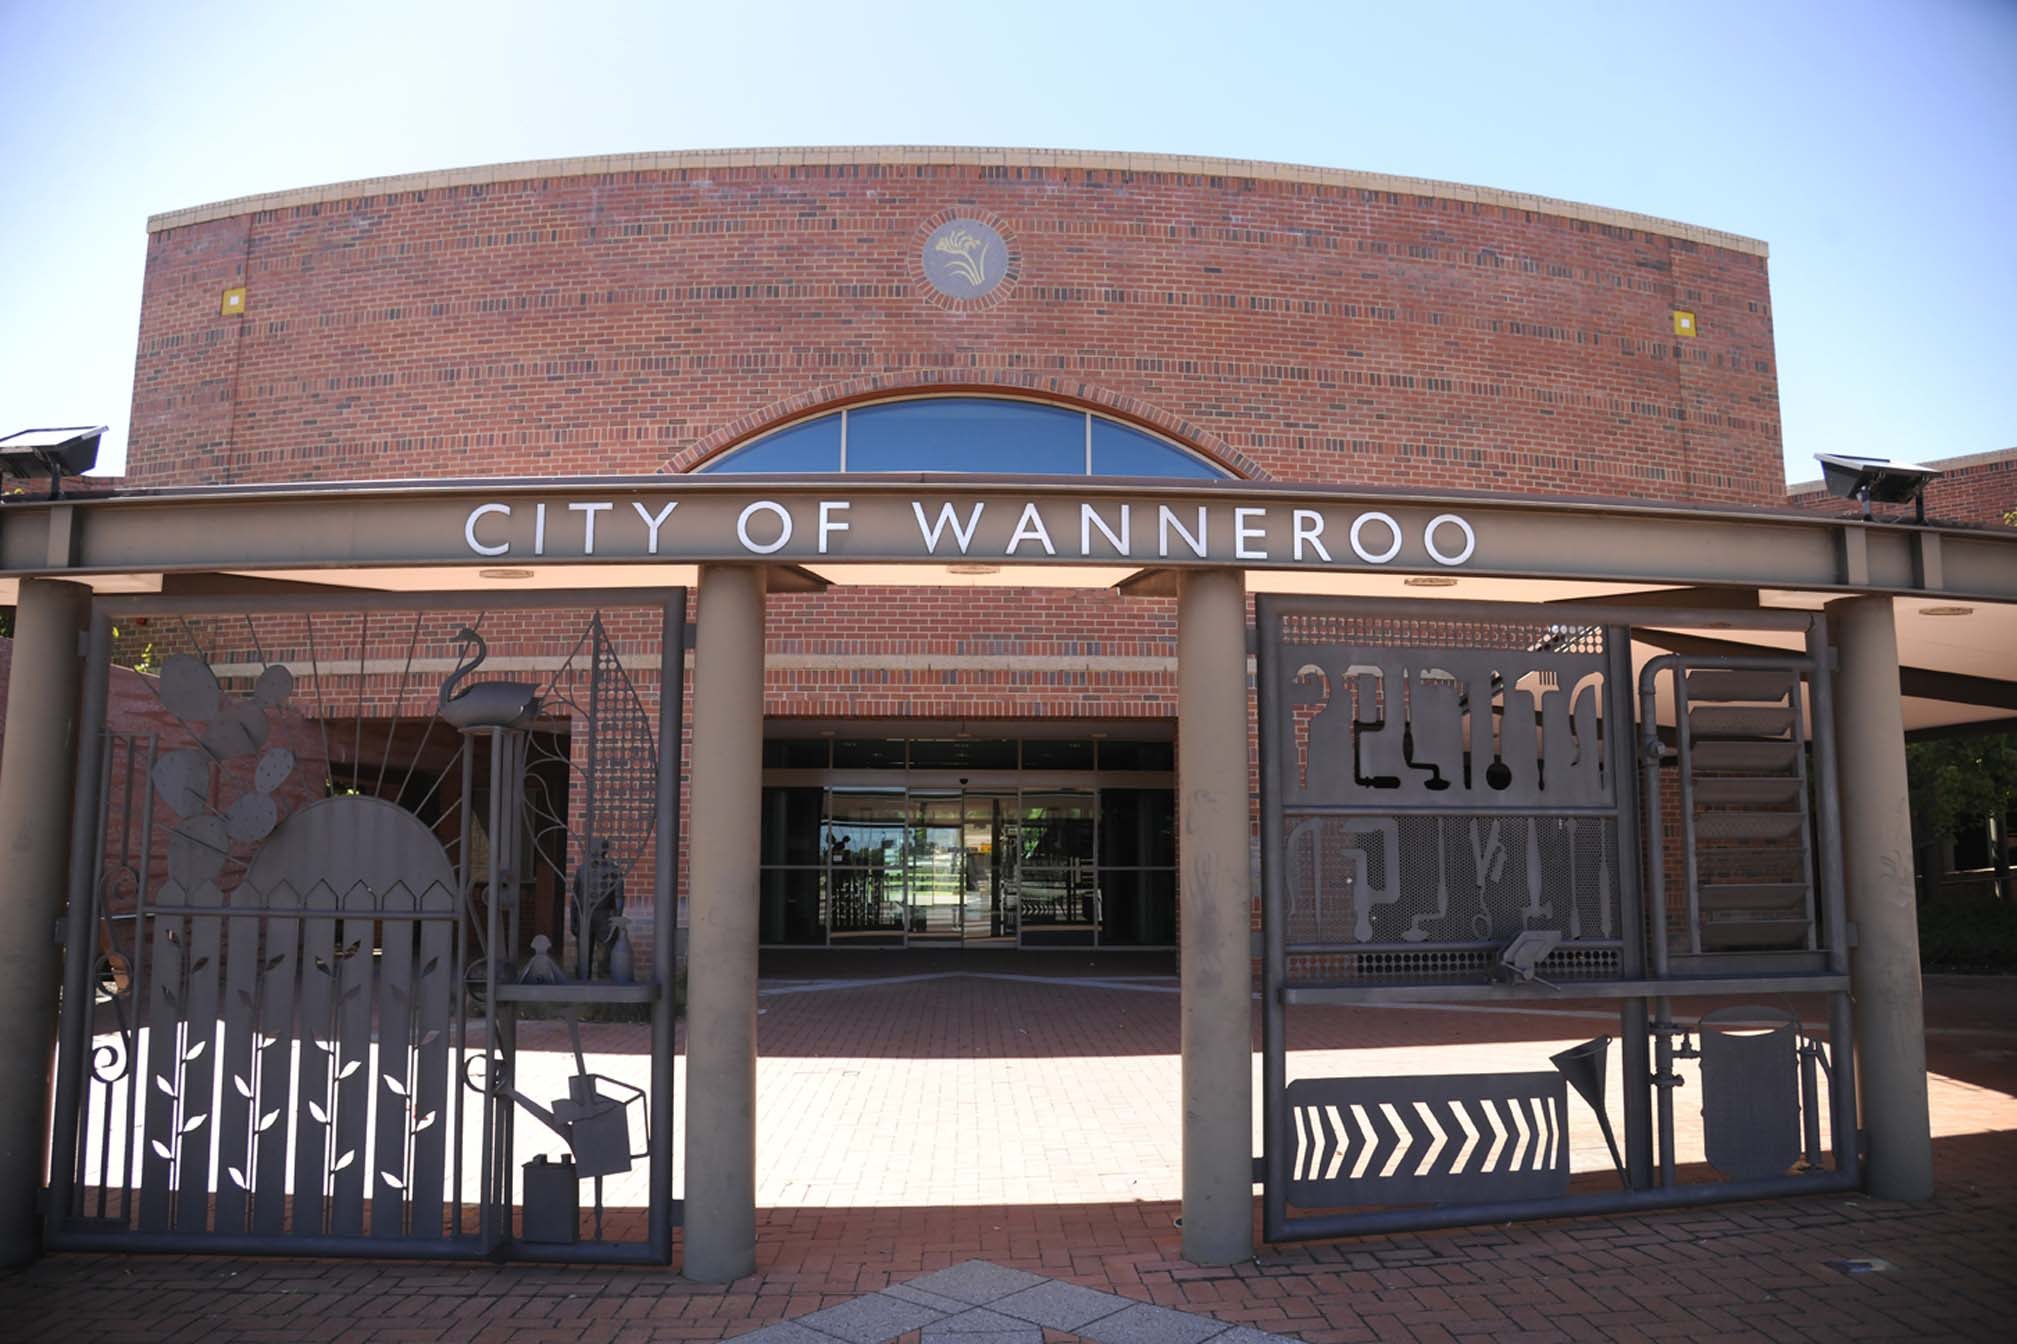 City of Wanneroo Civic Centre 2